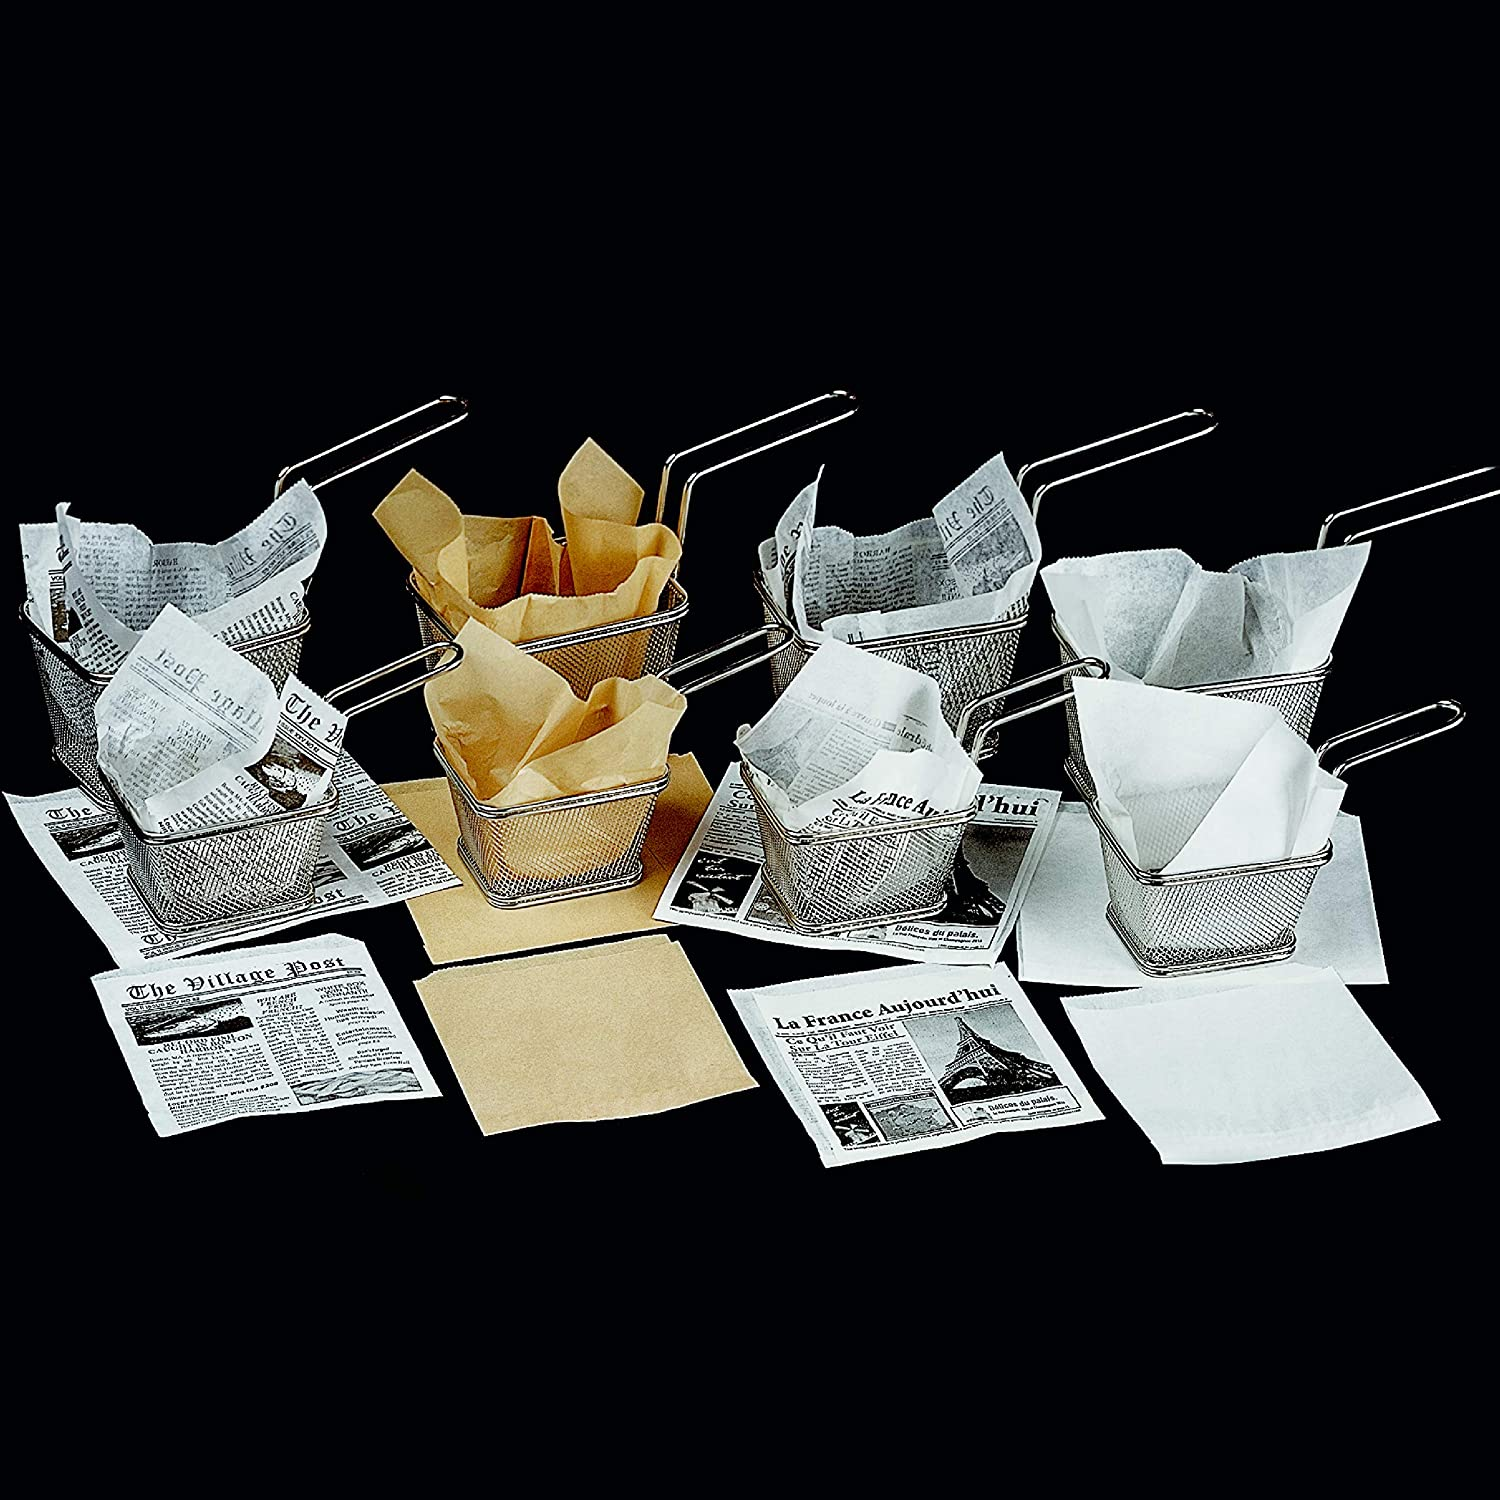 Enterprises White Newspaper Theme Cone Basket Liner Deli Wrap Paper Paper Food-Safe Tissue Liners Collection 4-T3050 G.E.T Pack of 2000